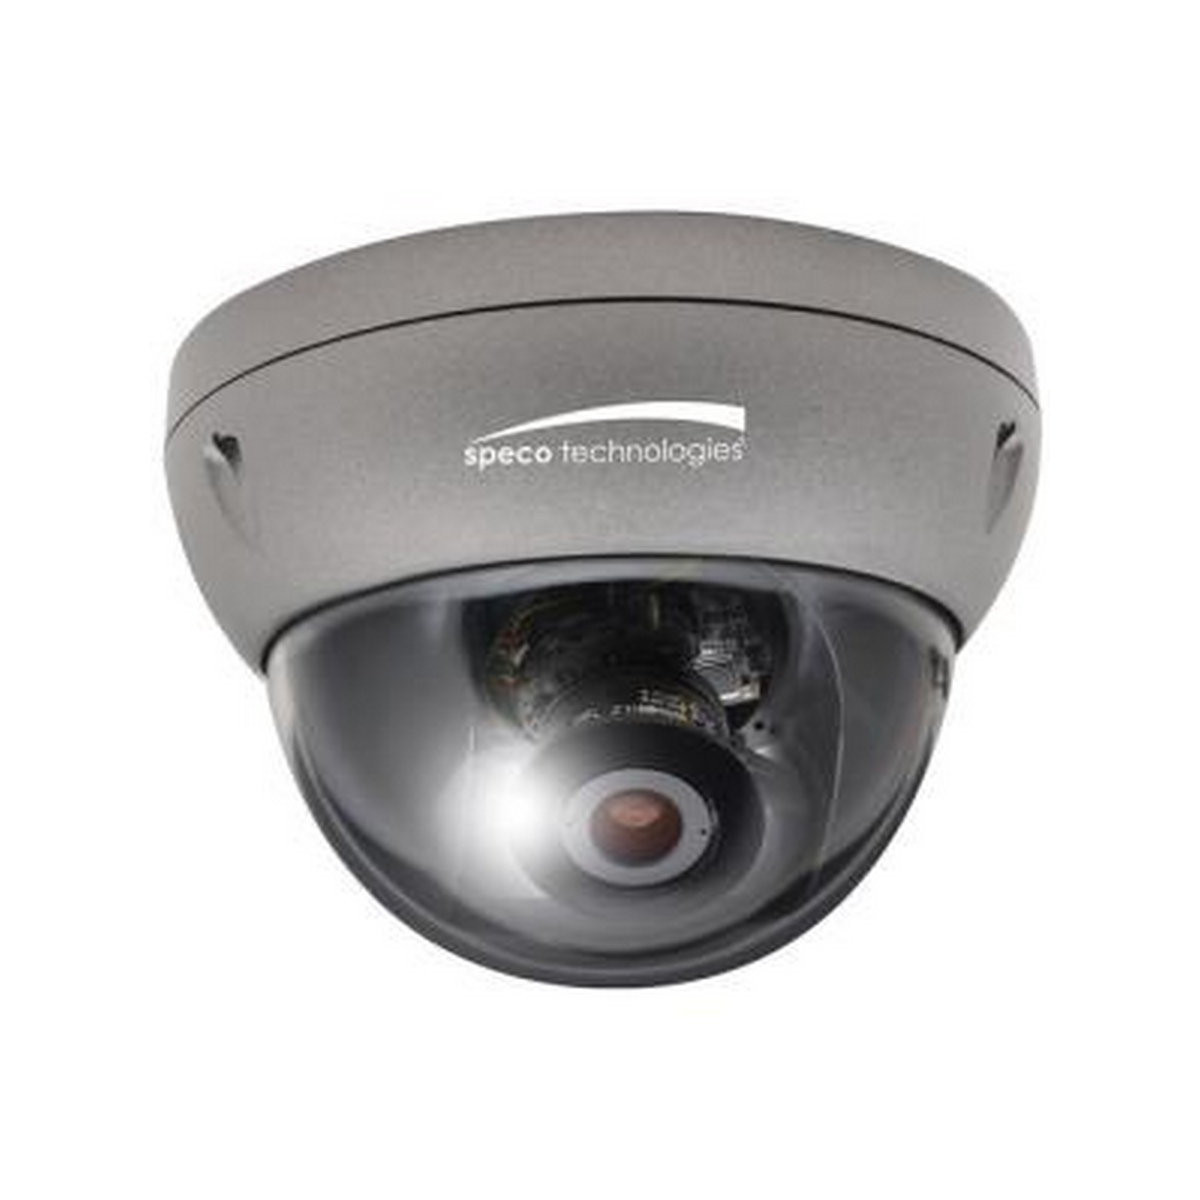 Speco Intensifier HD Indoor/Outdoor Dome IP Camera, 3.6-16mm VF lens, dark grey